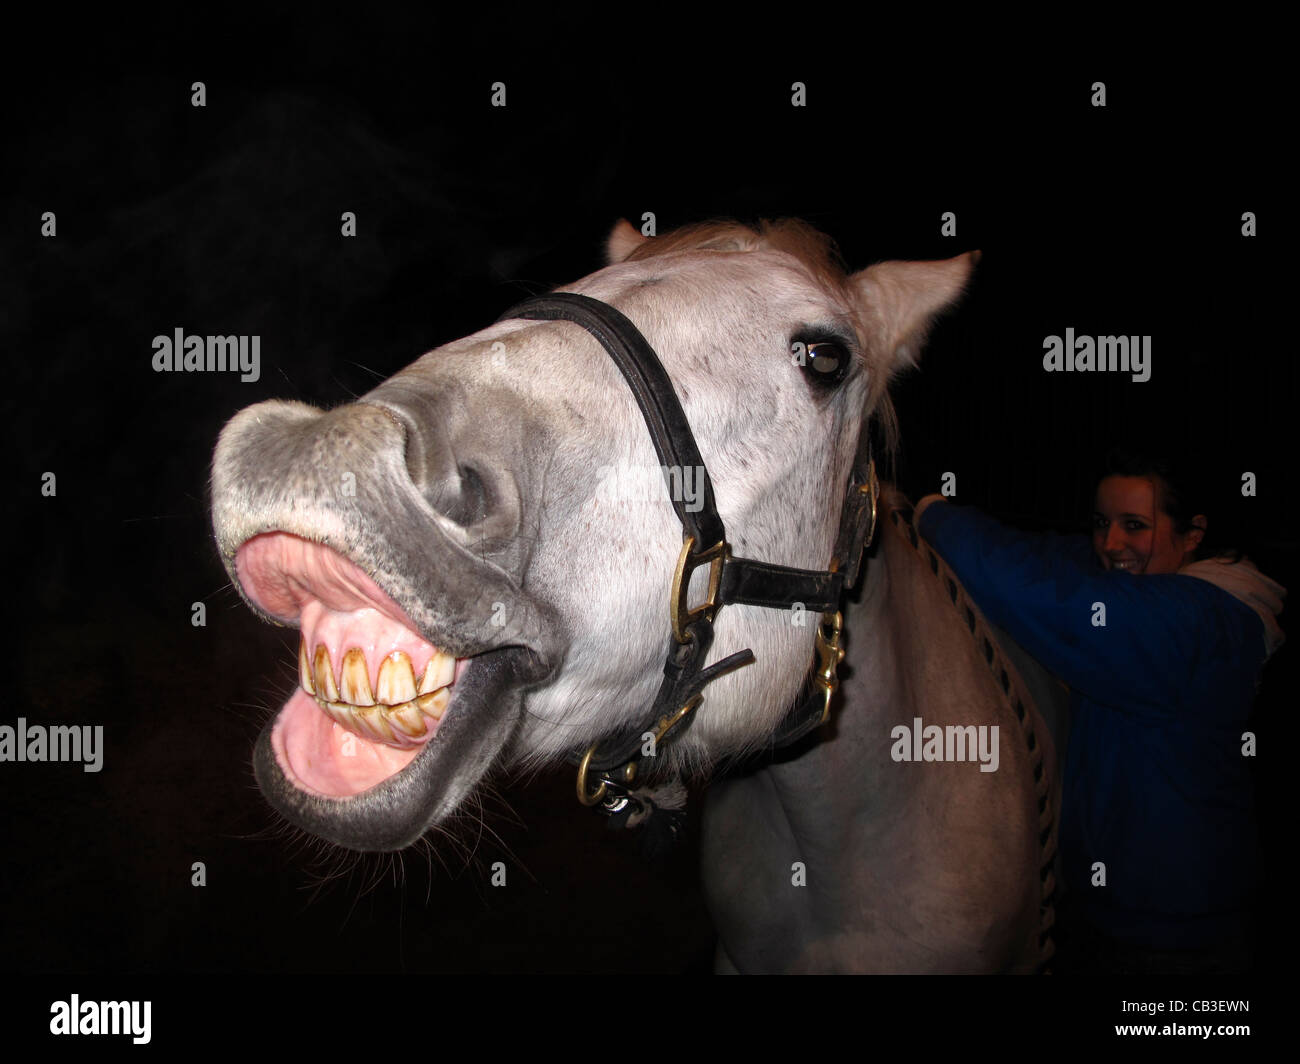 Funny Horse Face Stock Photos & Funny Horse Face Stock ... - photo#29